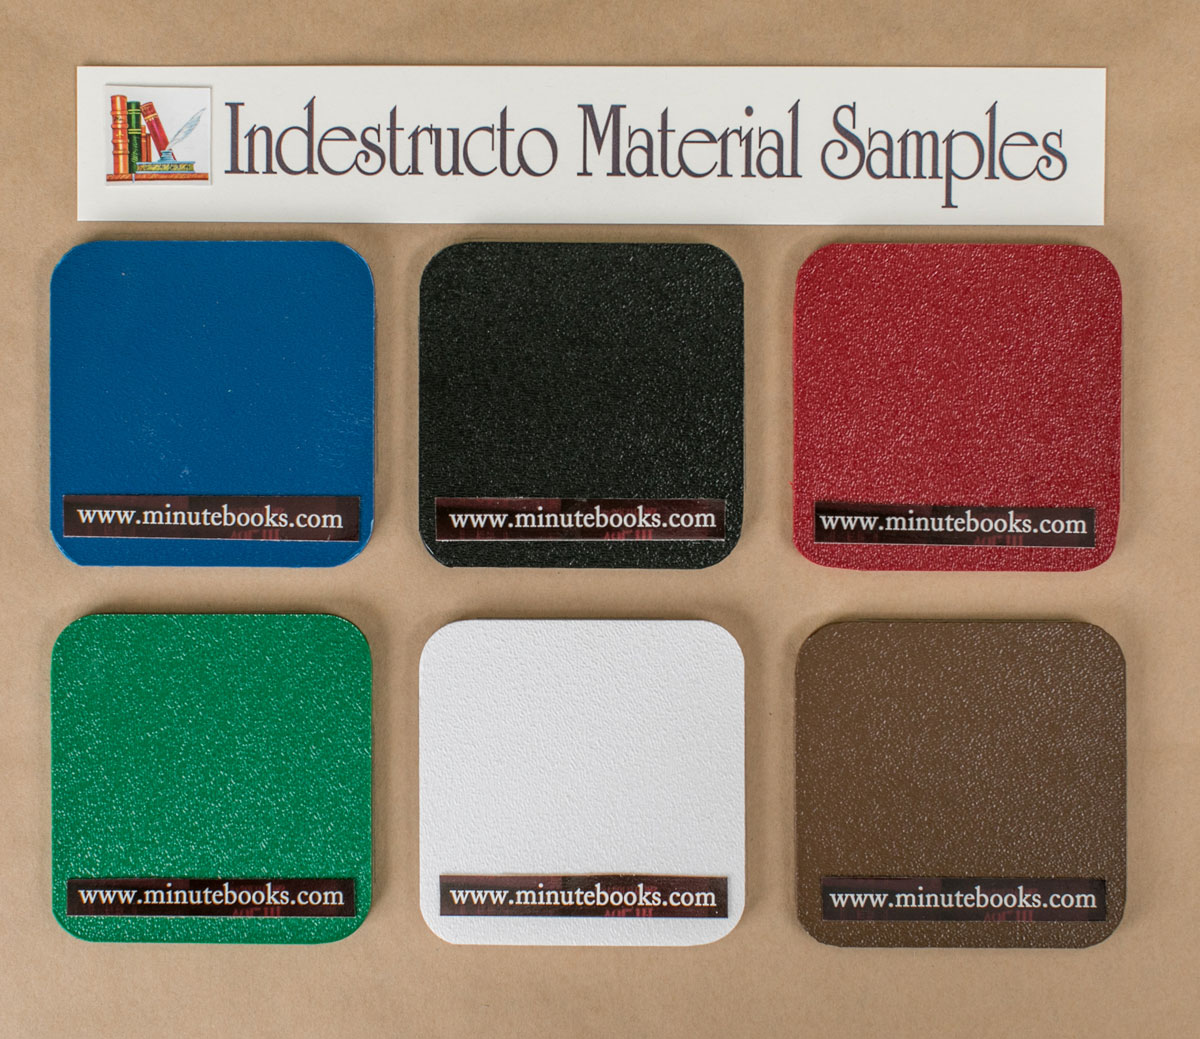 Indestructo material samples image